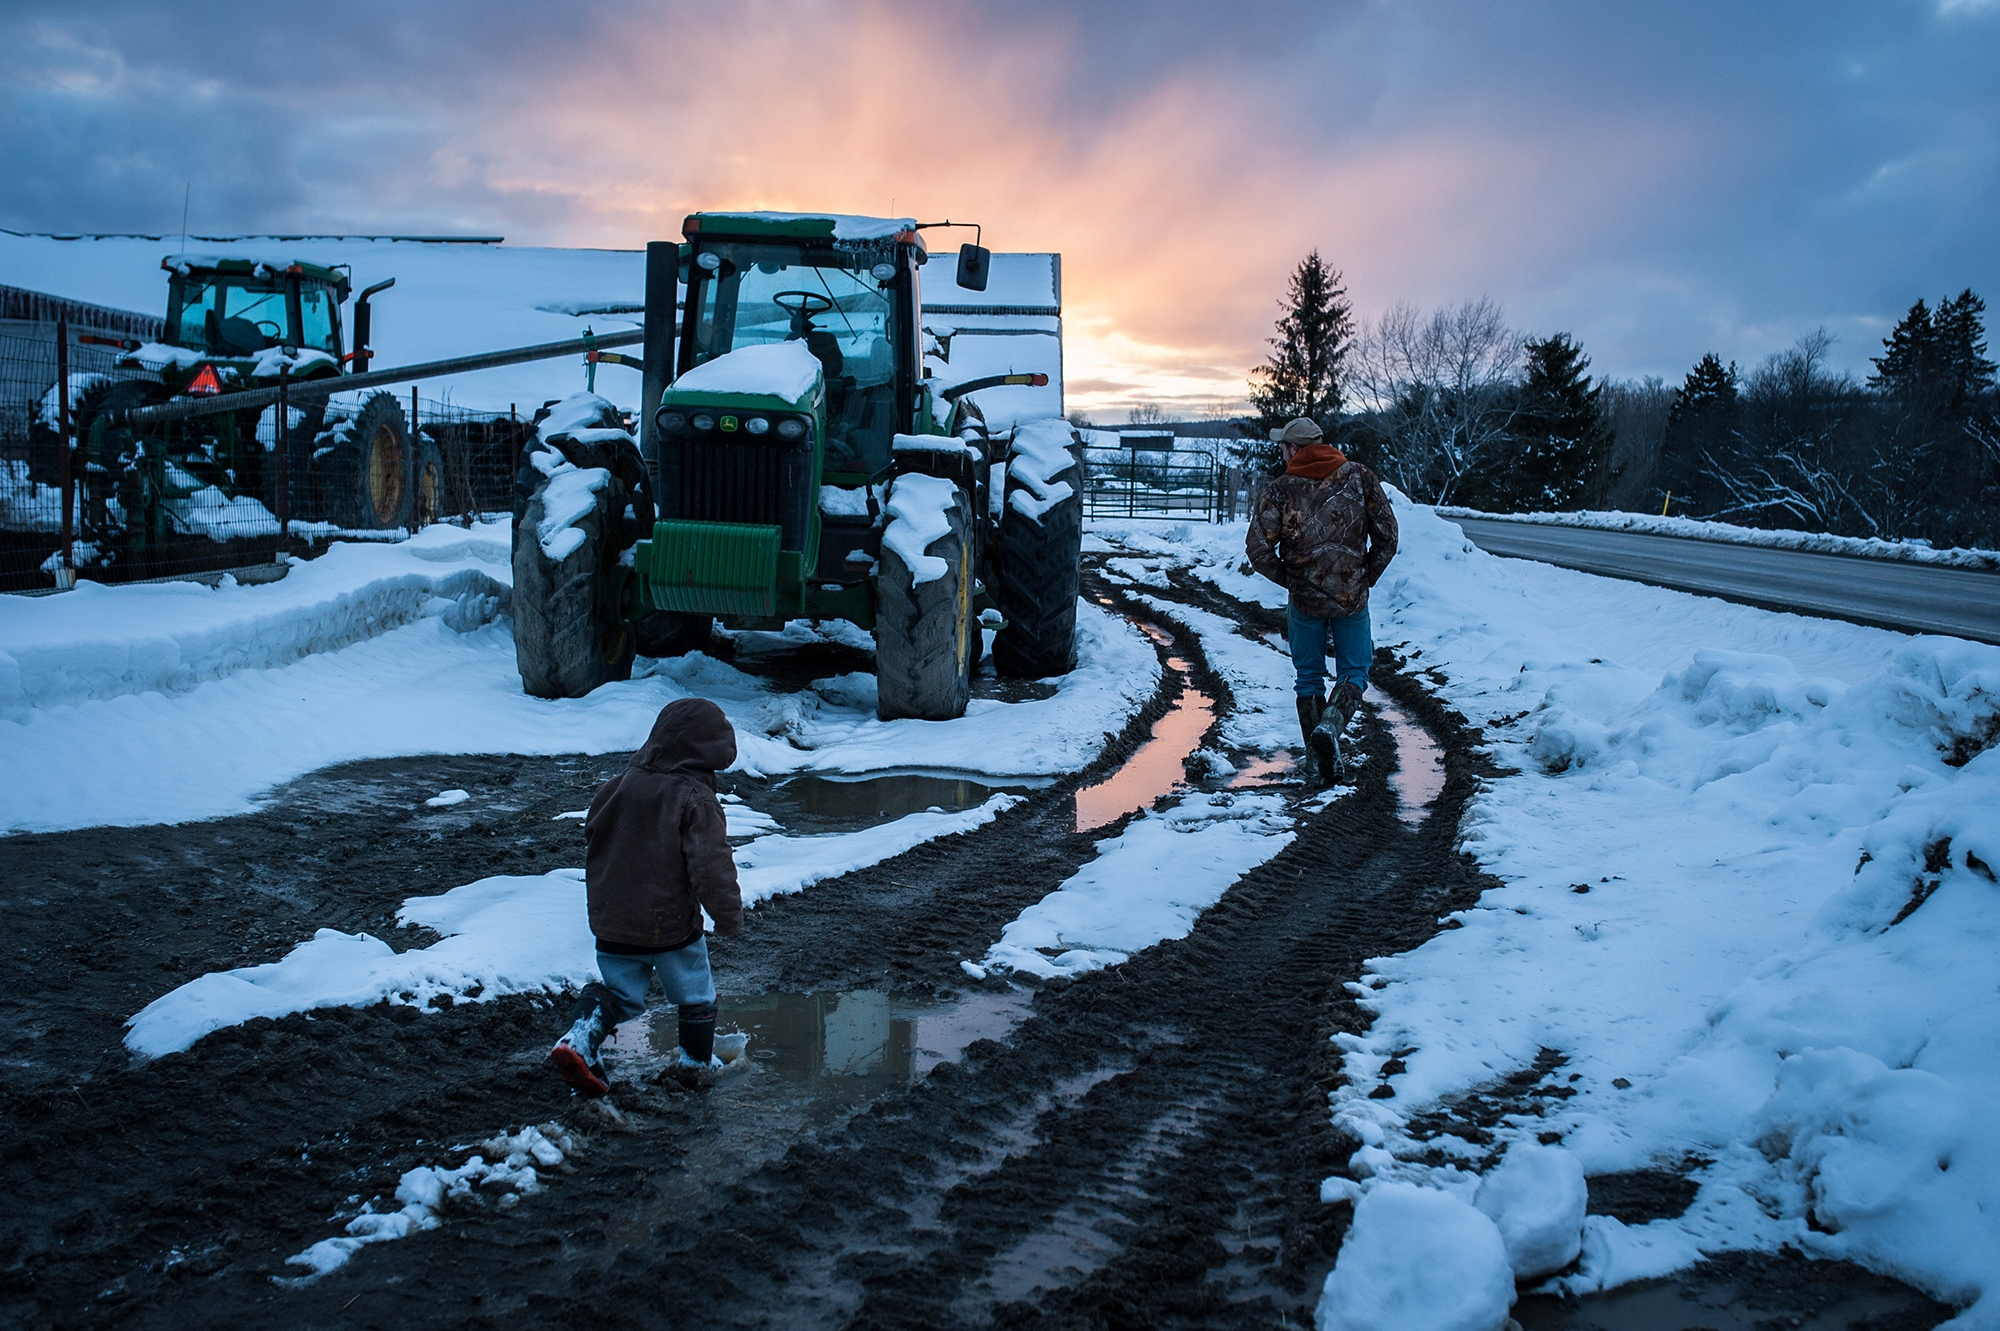 Fred Morgan's son, Cody Morgan, 23, and his nephew Tucker Bailey, 4, at their family's cow farm in Eaton, NY Thursday, March 8, 2018. Fred Morgan said he had considered committing suicide so that his family could receive a life insurance payout after he was unable to repay debts. Kholood Eid for The New York Times